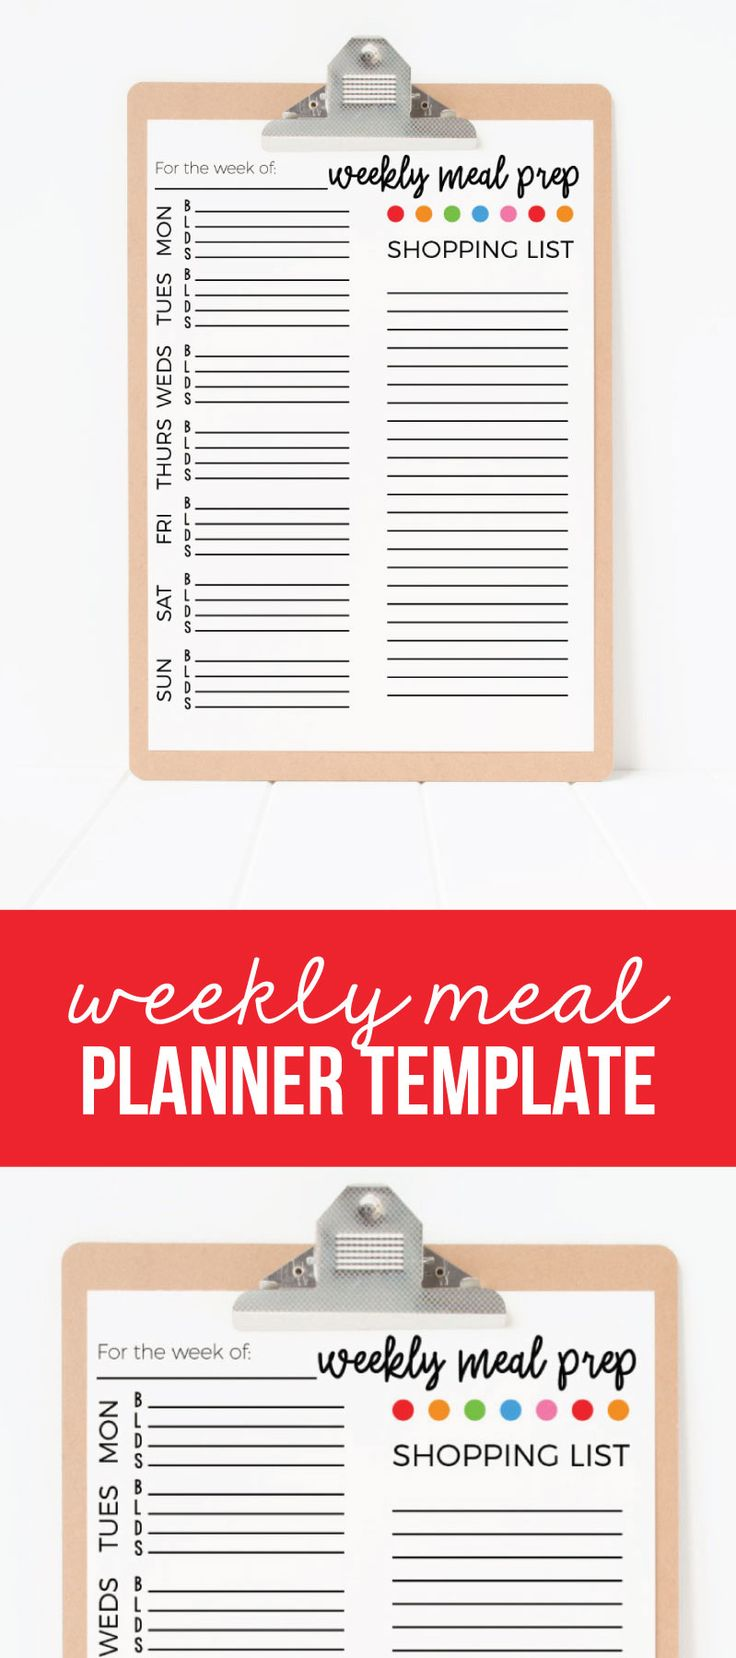 Weekly Meal Planner Template Printable - download and print this free weekly plan to help organize for meals! from www.thirtyhandmadedays.com